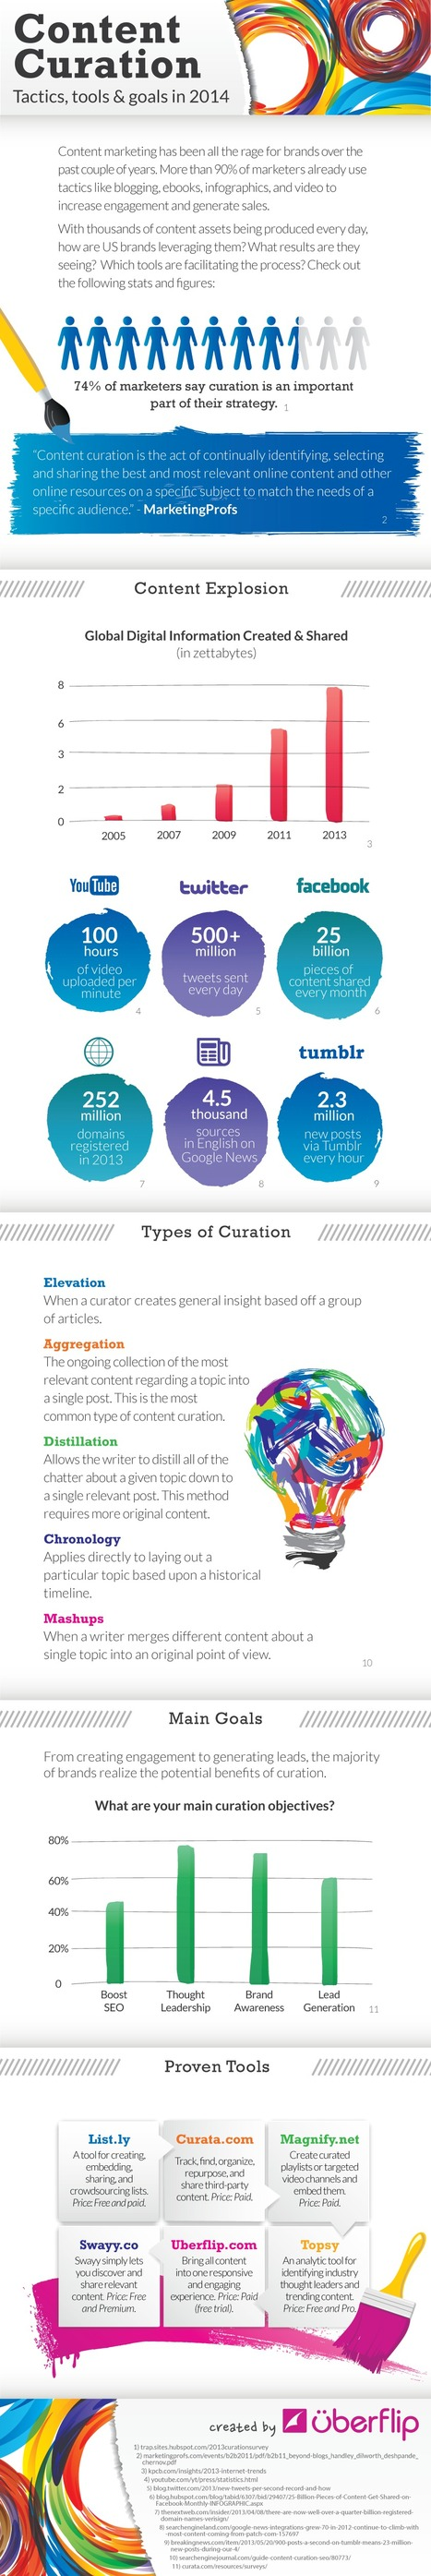 Content Curation - infographic | 21st Century Learning | Scoop.it